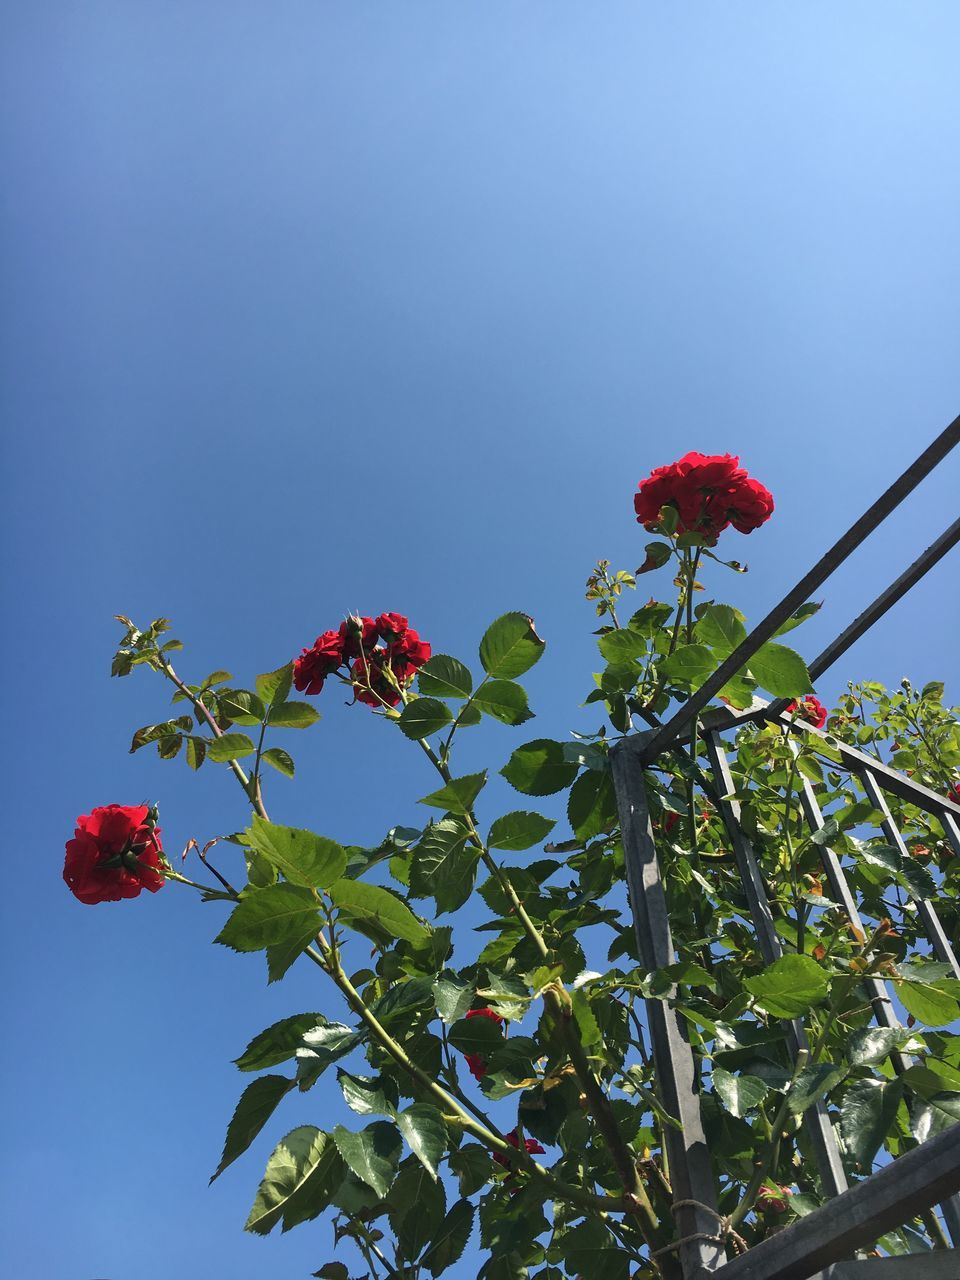 flower, red, growth, fragility, freshness, beauty in nature, petal, nature, low angle view, plant, flower head, blooming, no people, day, leaf, outdoors, green color, hibiscus, sky, close-up